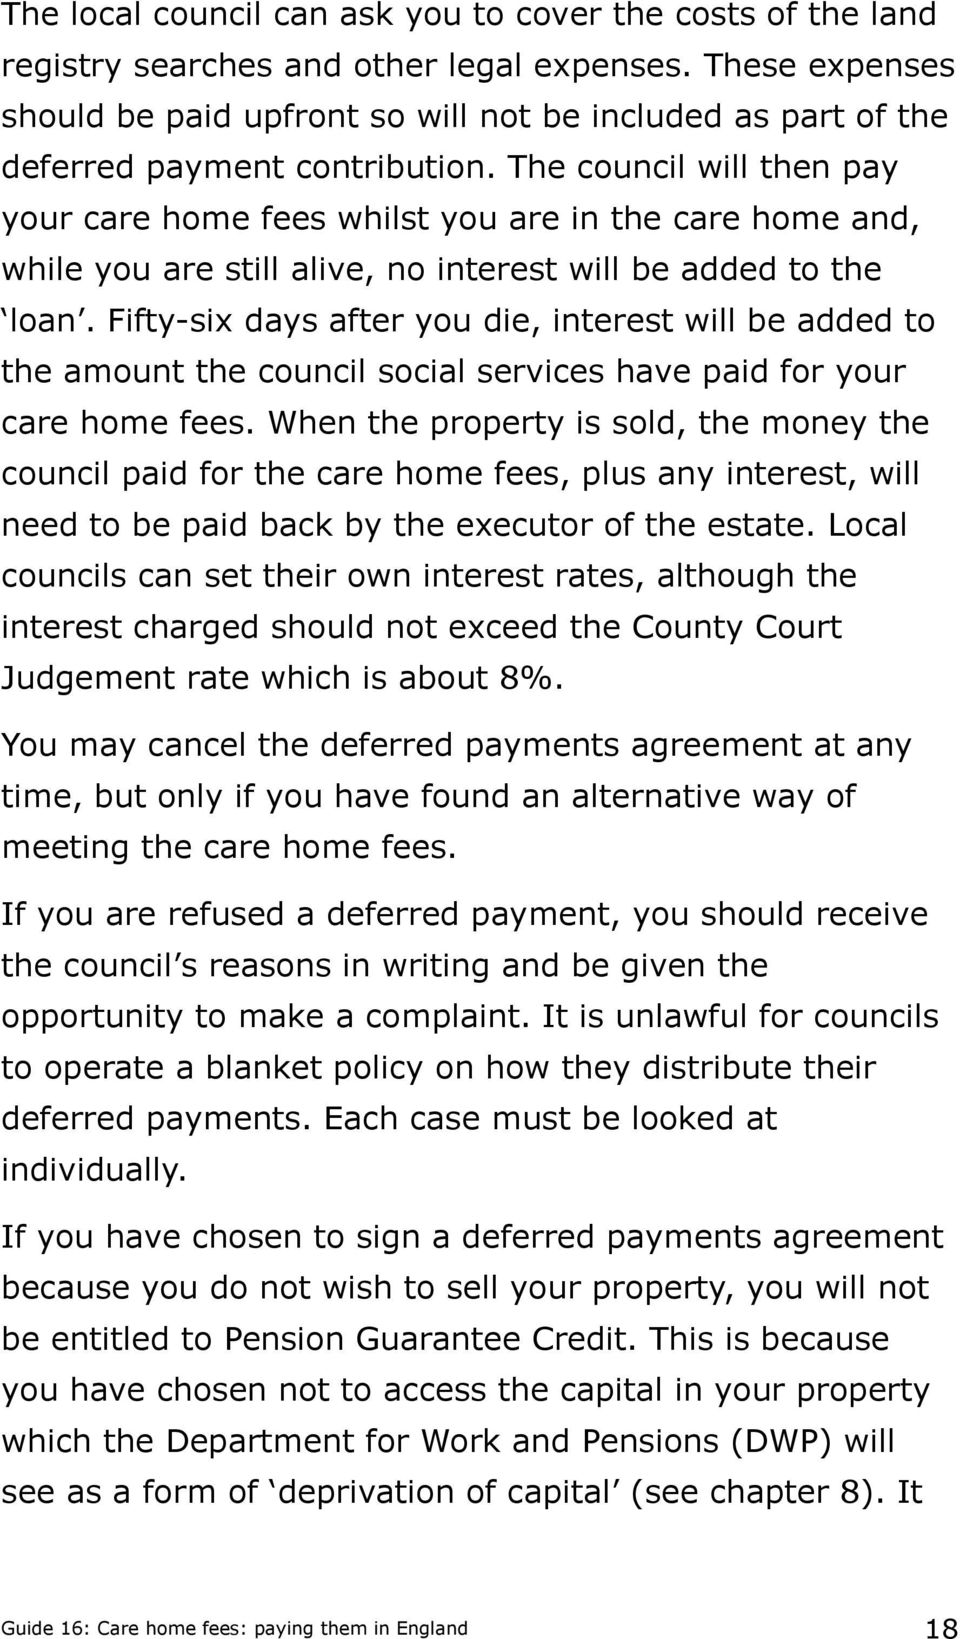 The council will then pay your care home fees whilst you are in the care home and, while you are still alive, no interest will be added to the loan.